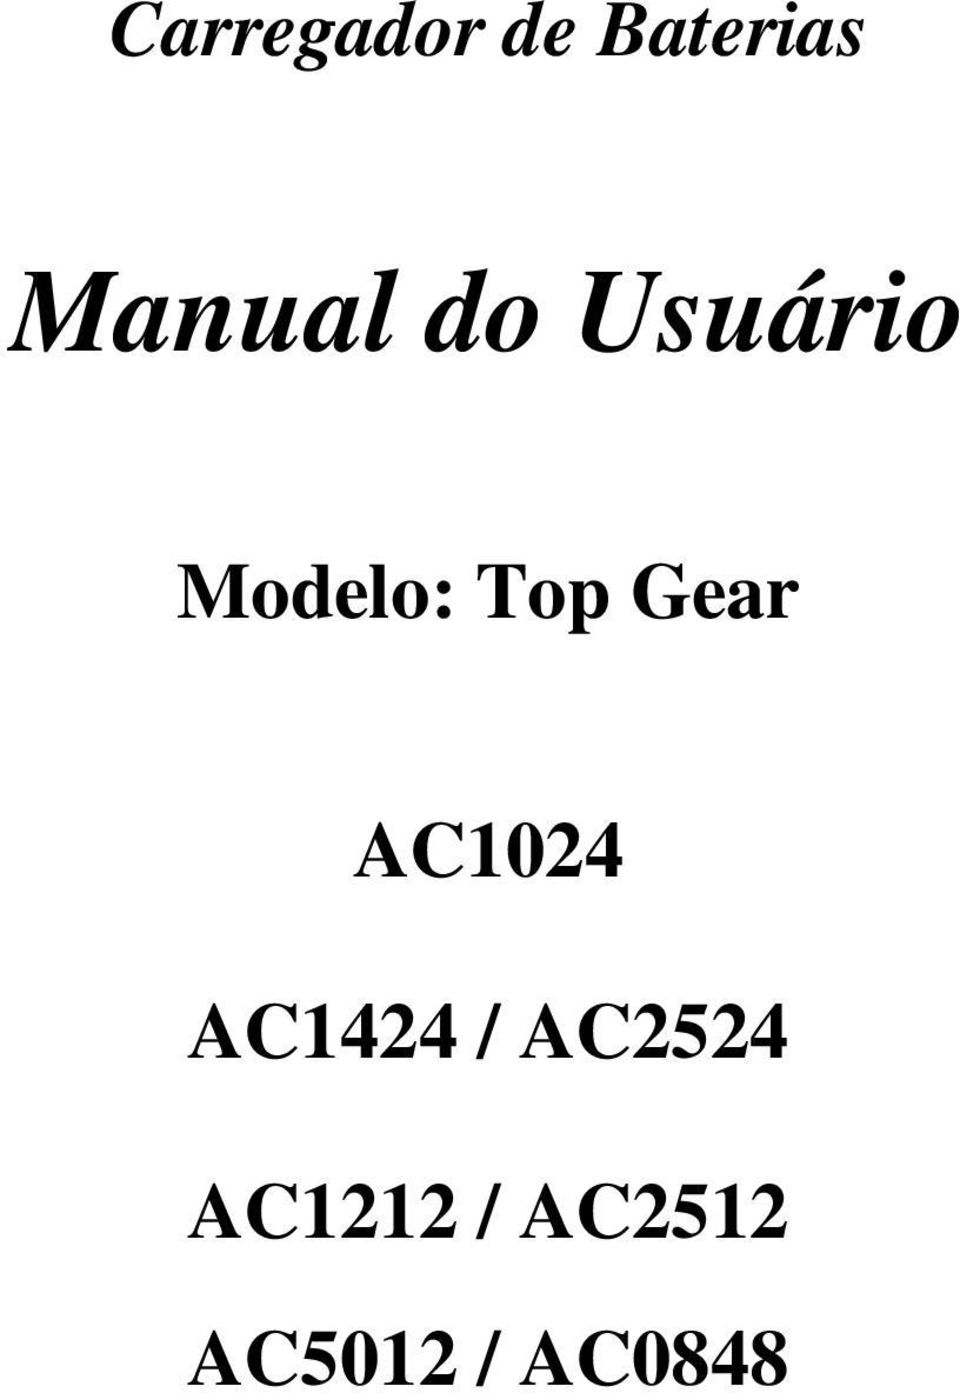 Top Gear AC1024 AC1424 /